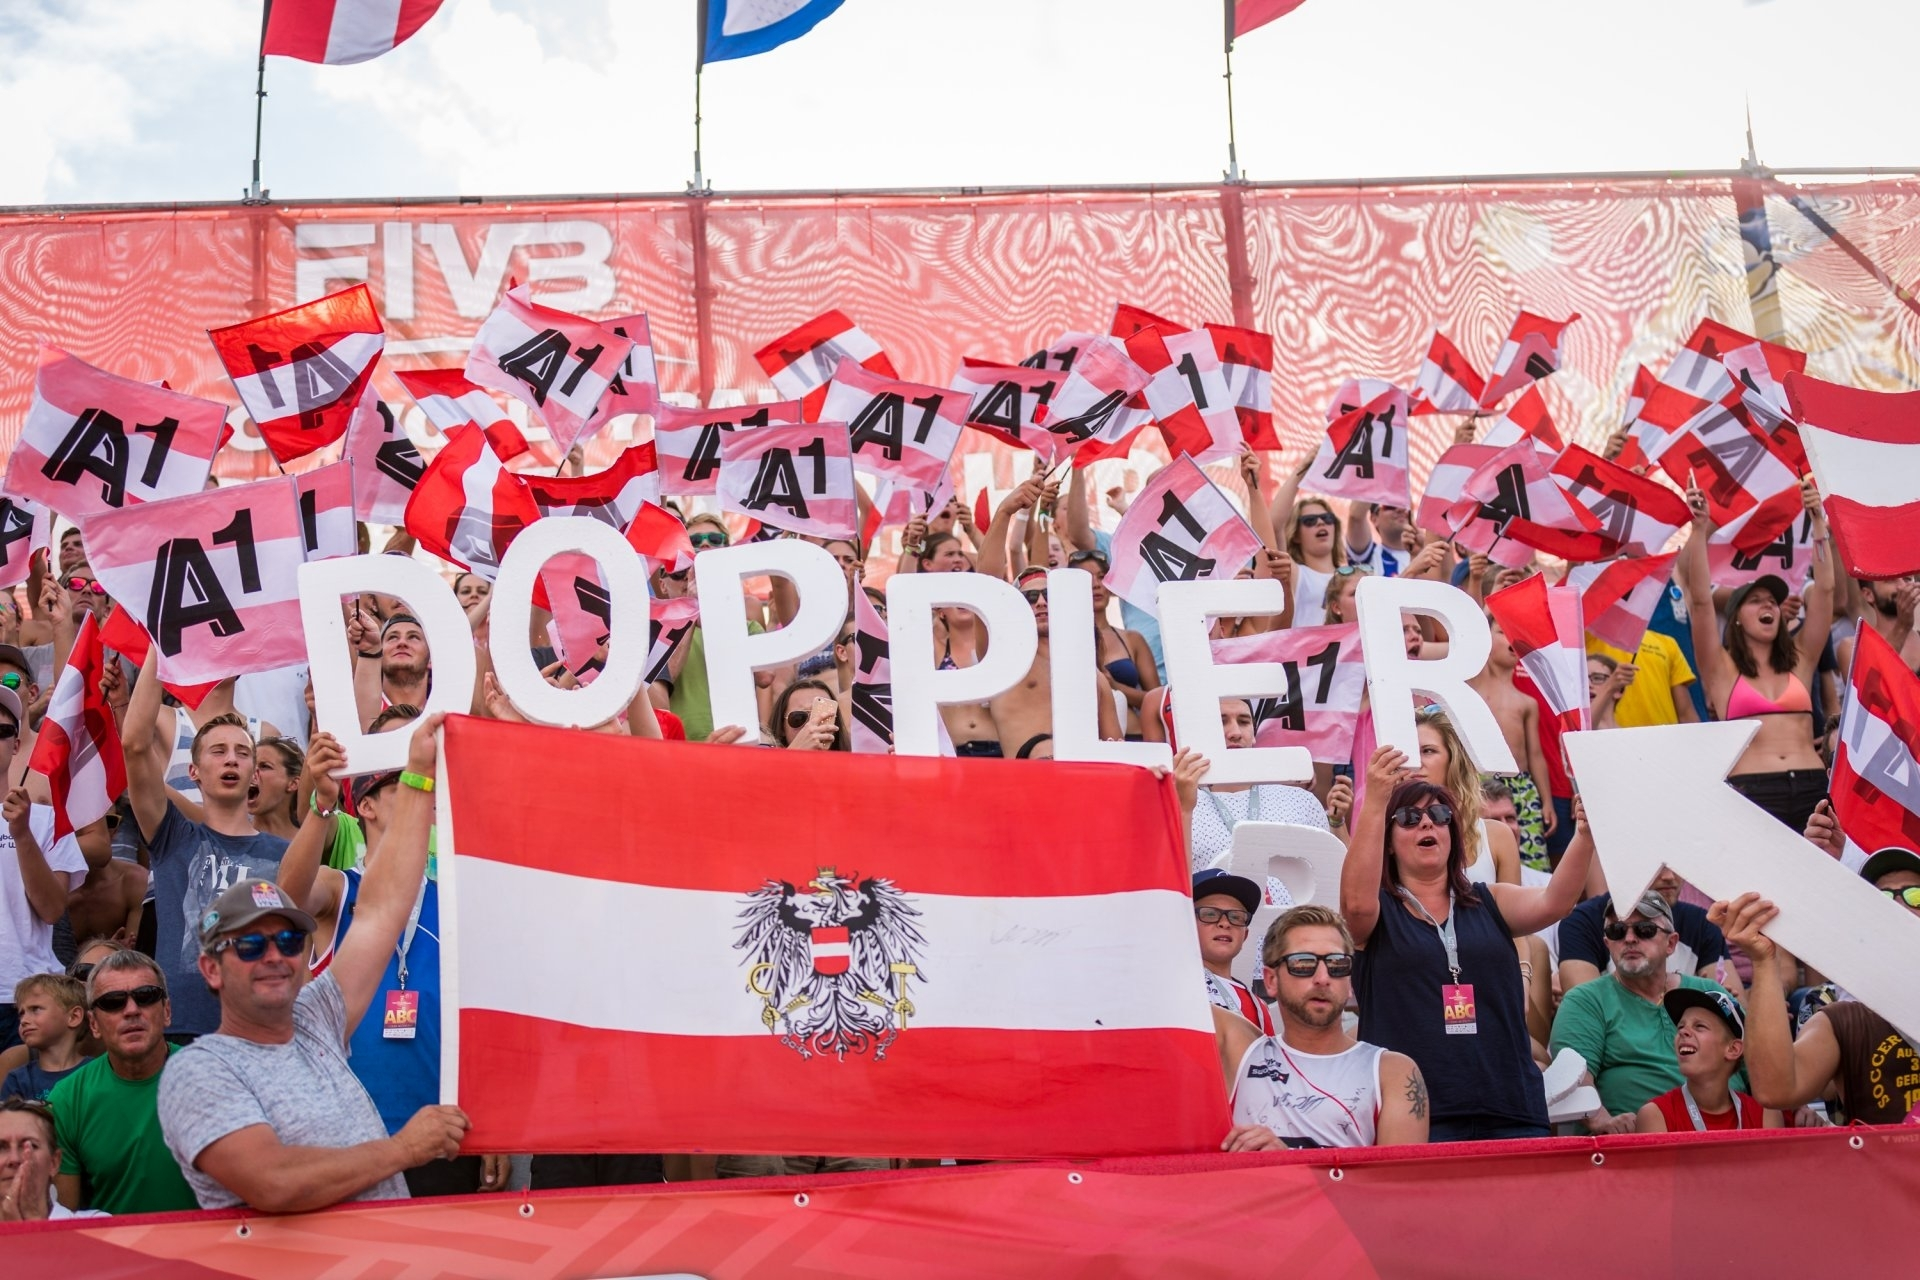 Clemens Doppler's name spelt out by the crowd at last year's World Championships